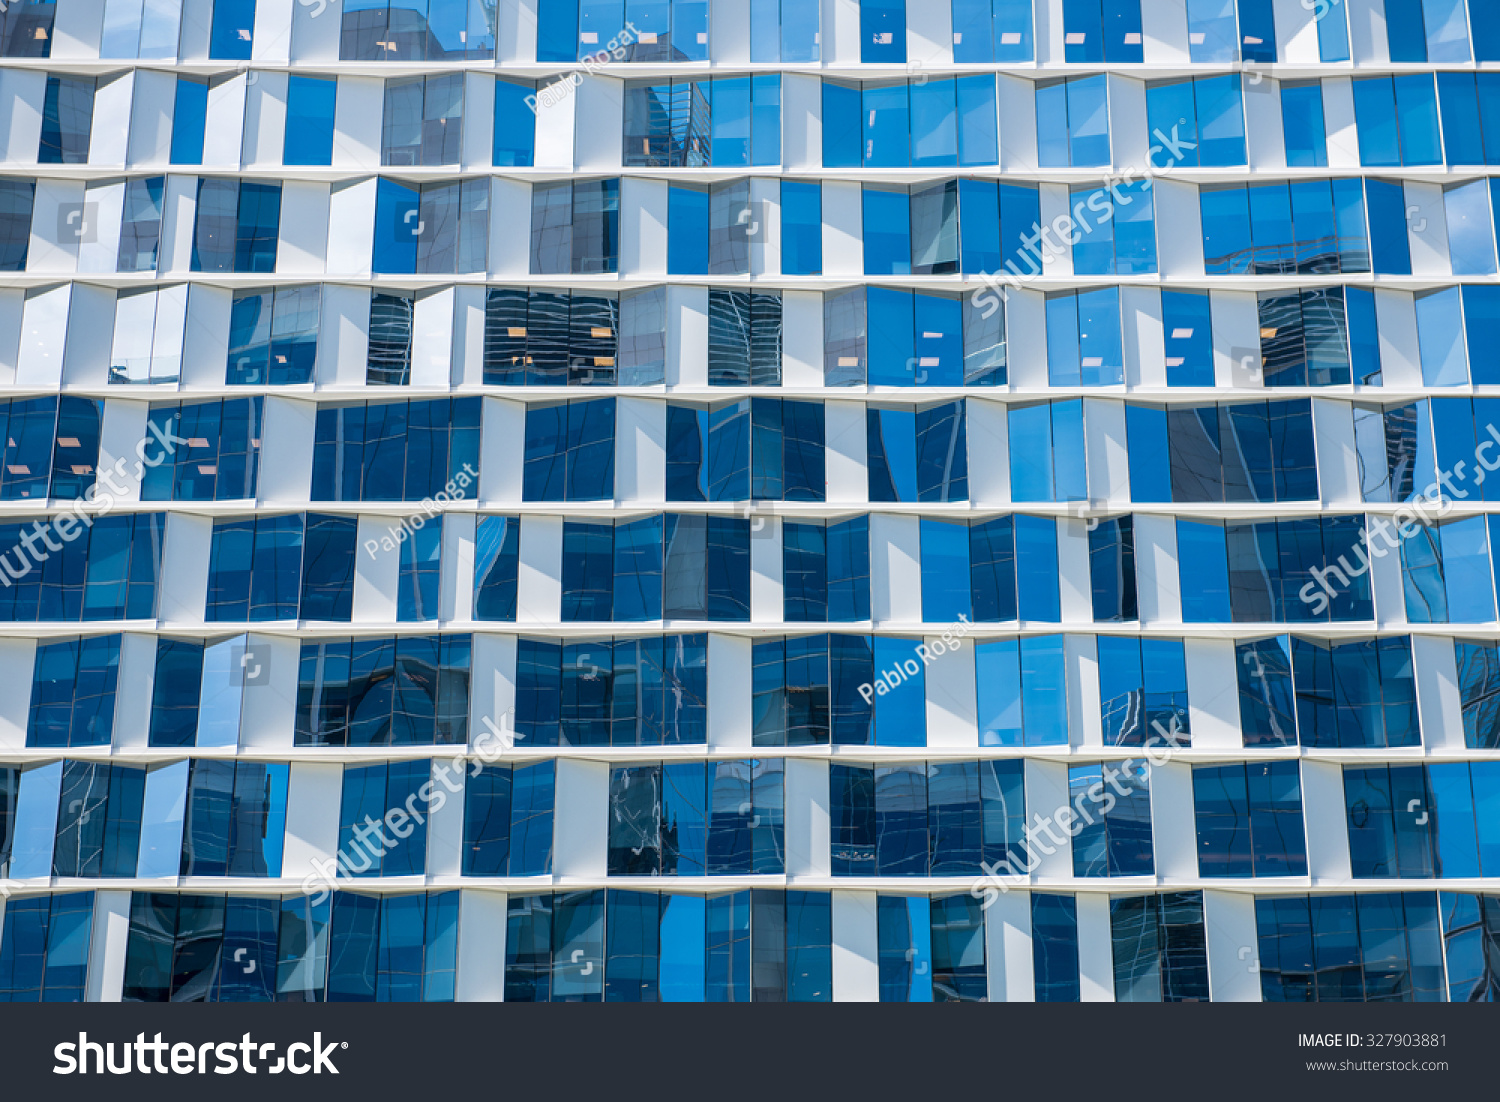 Glass facade texture  Building Facade Blue Glass Texture Stock Photo 327903881 ...